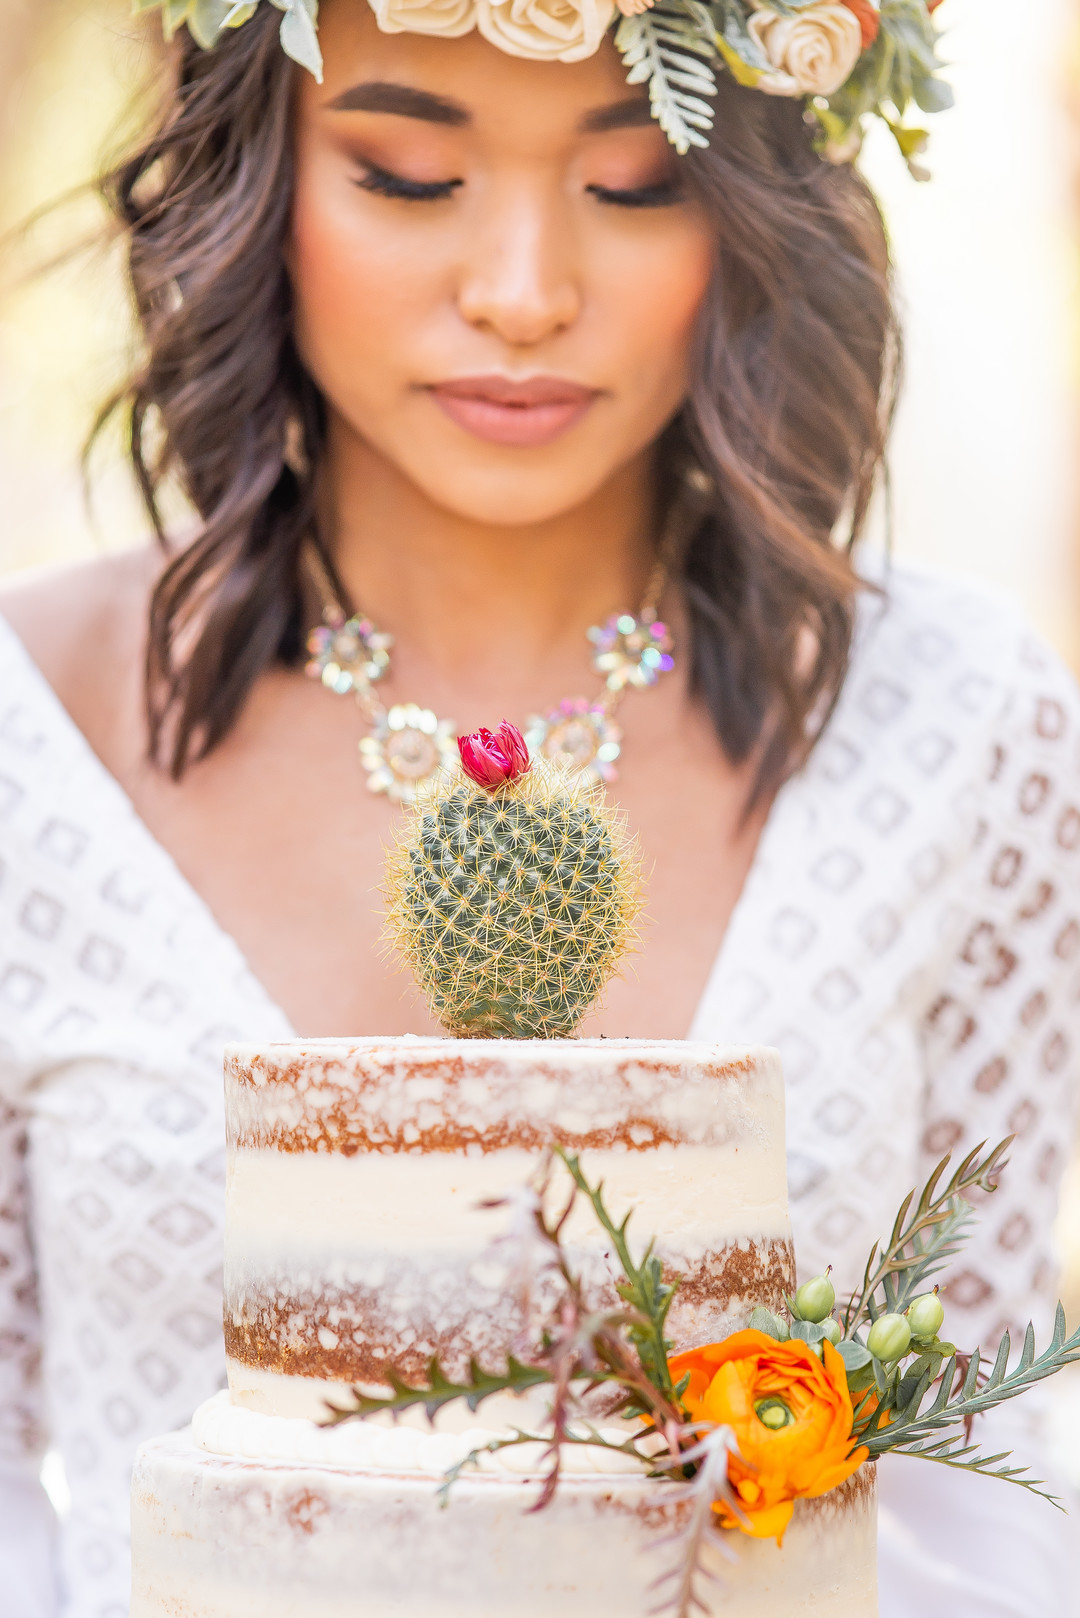 www.santabarbarawedding.com   Staci and Michael Photography   Montana de Oro State Park   EverAfter Wood Floral   Makeup by Madisen Wickliffe   Bri's Sweet Treats   Bride holding wedding cake